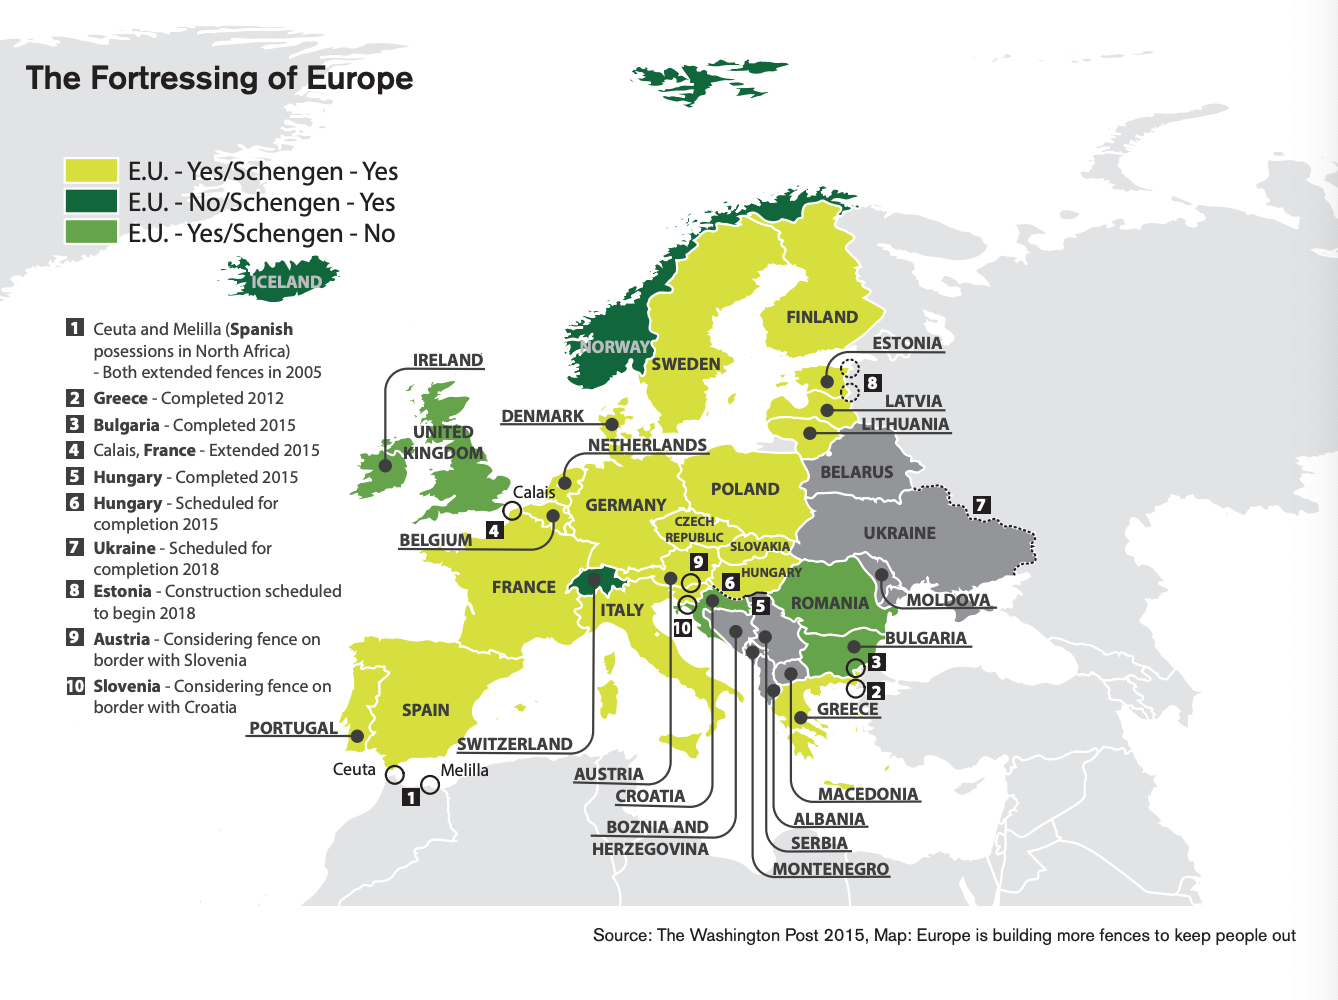 This infographic includes a map that showcases the fortressing of Europe